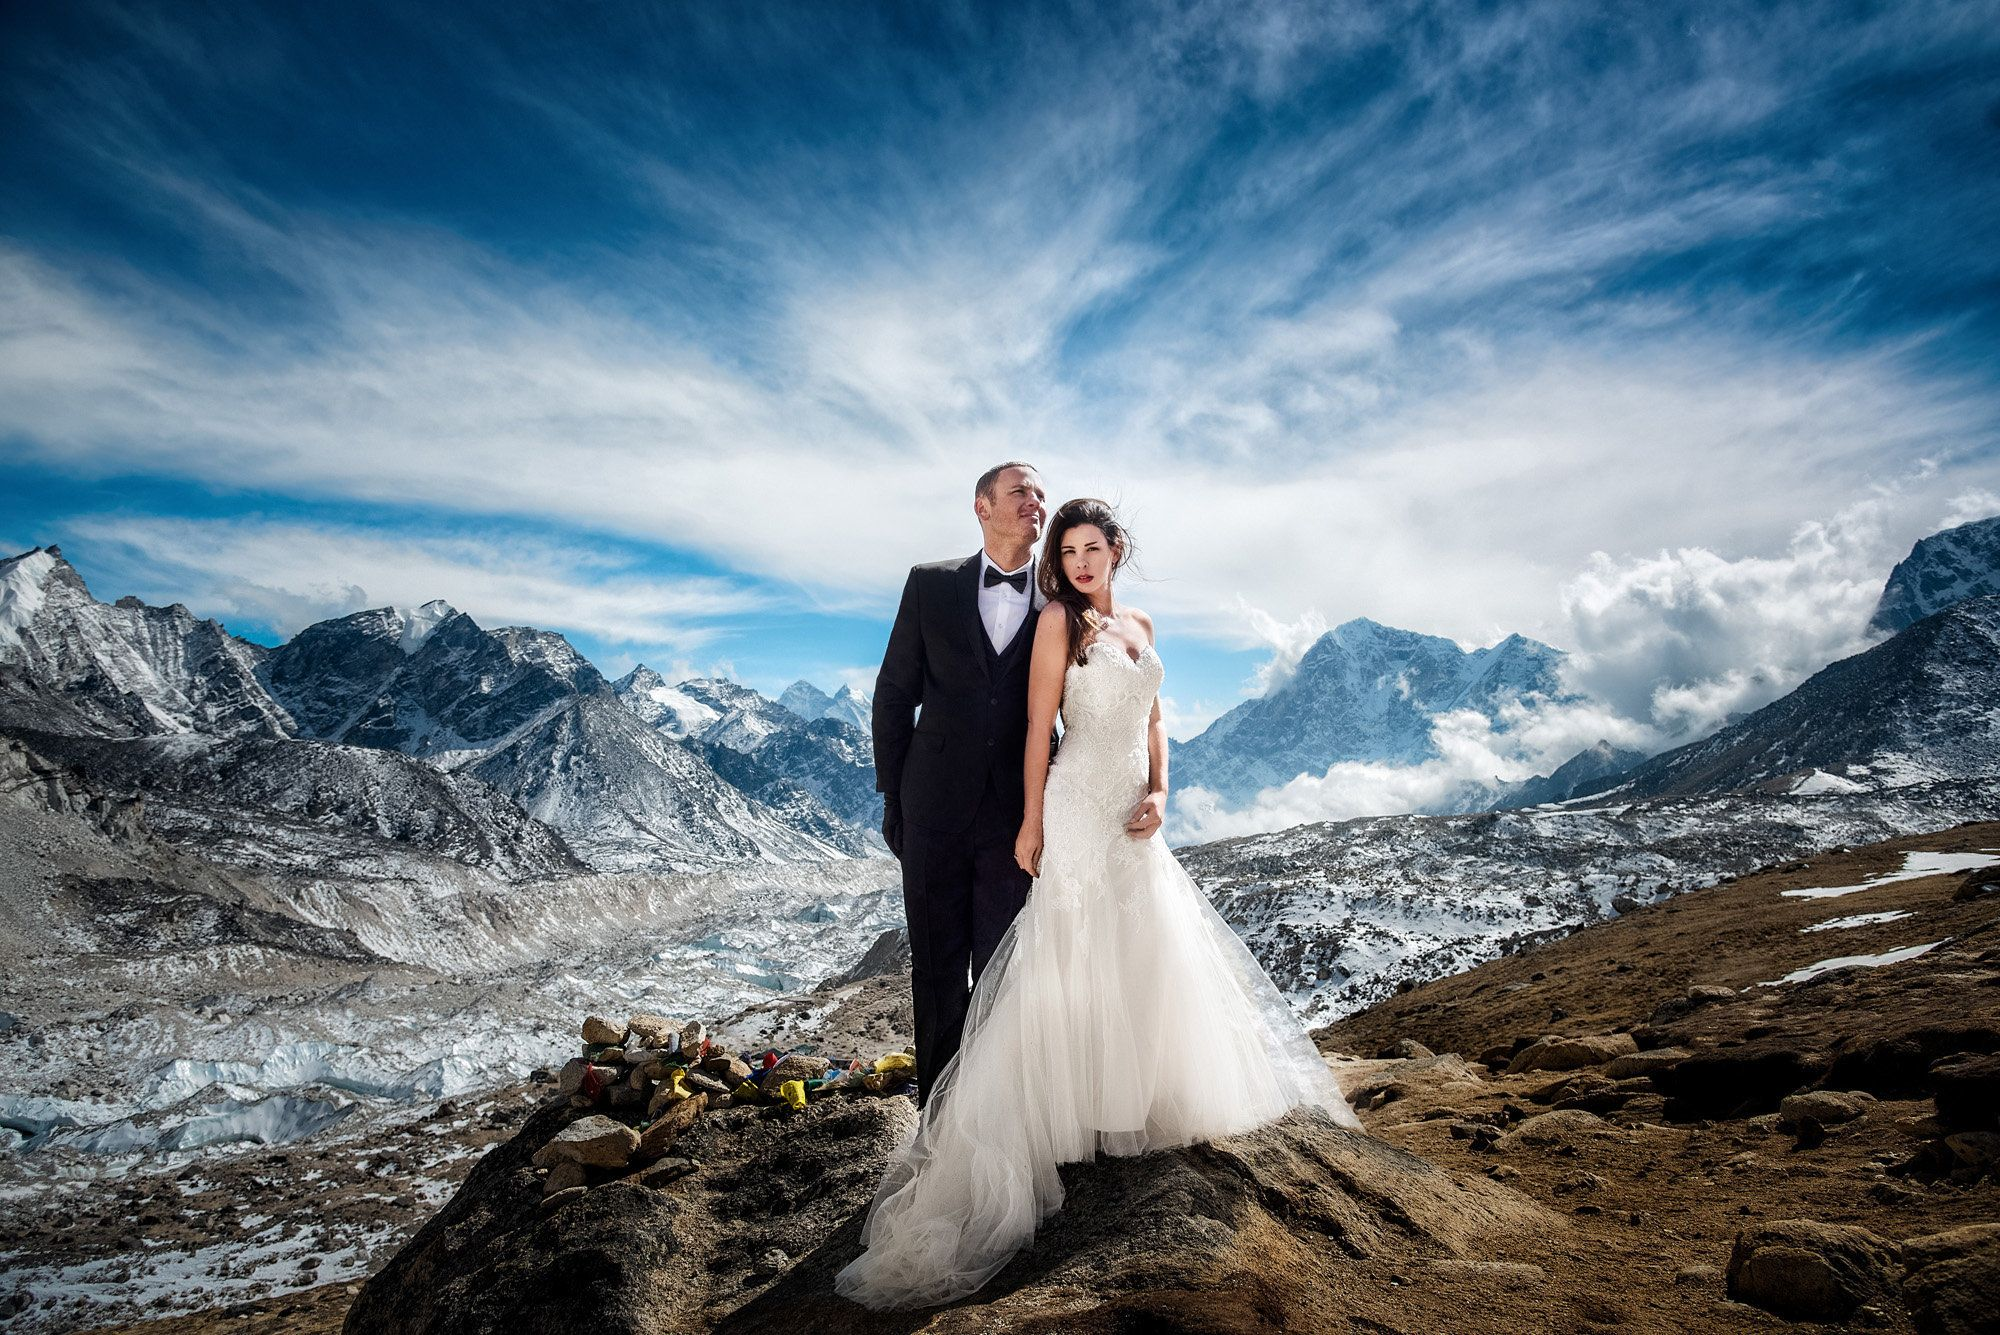 James Sissom and Ashley Schmieder on their wedding day at Everest Base